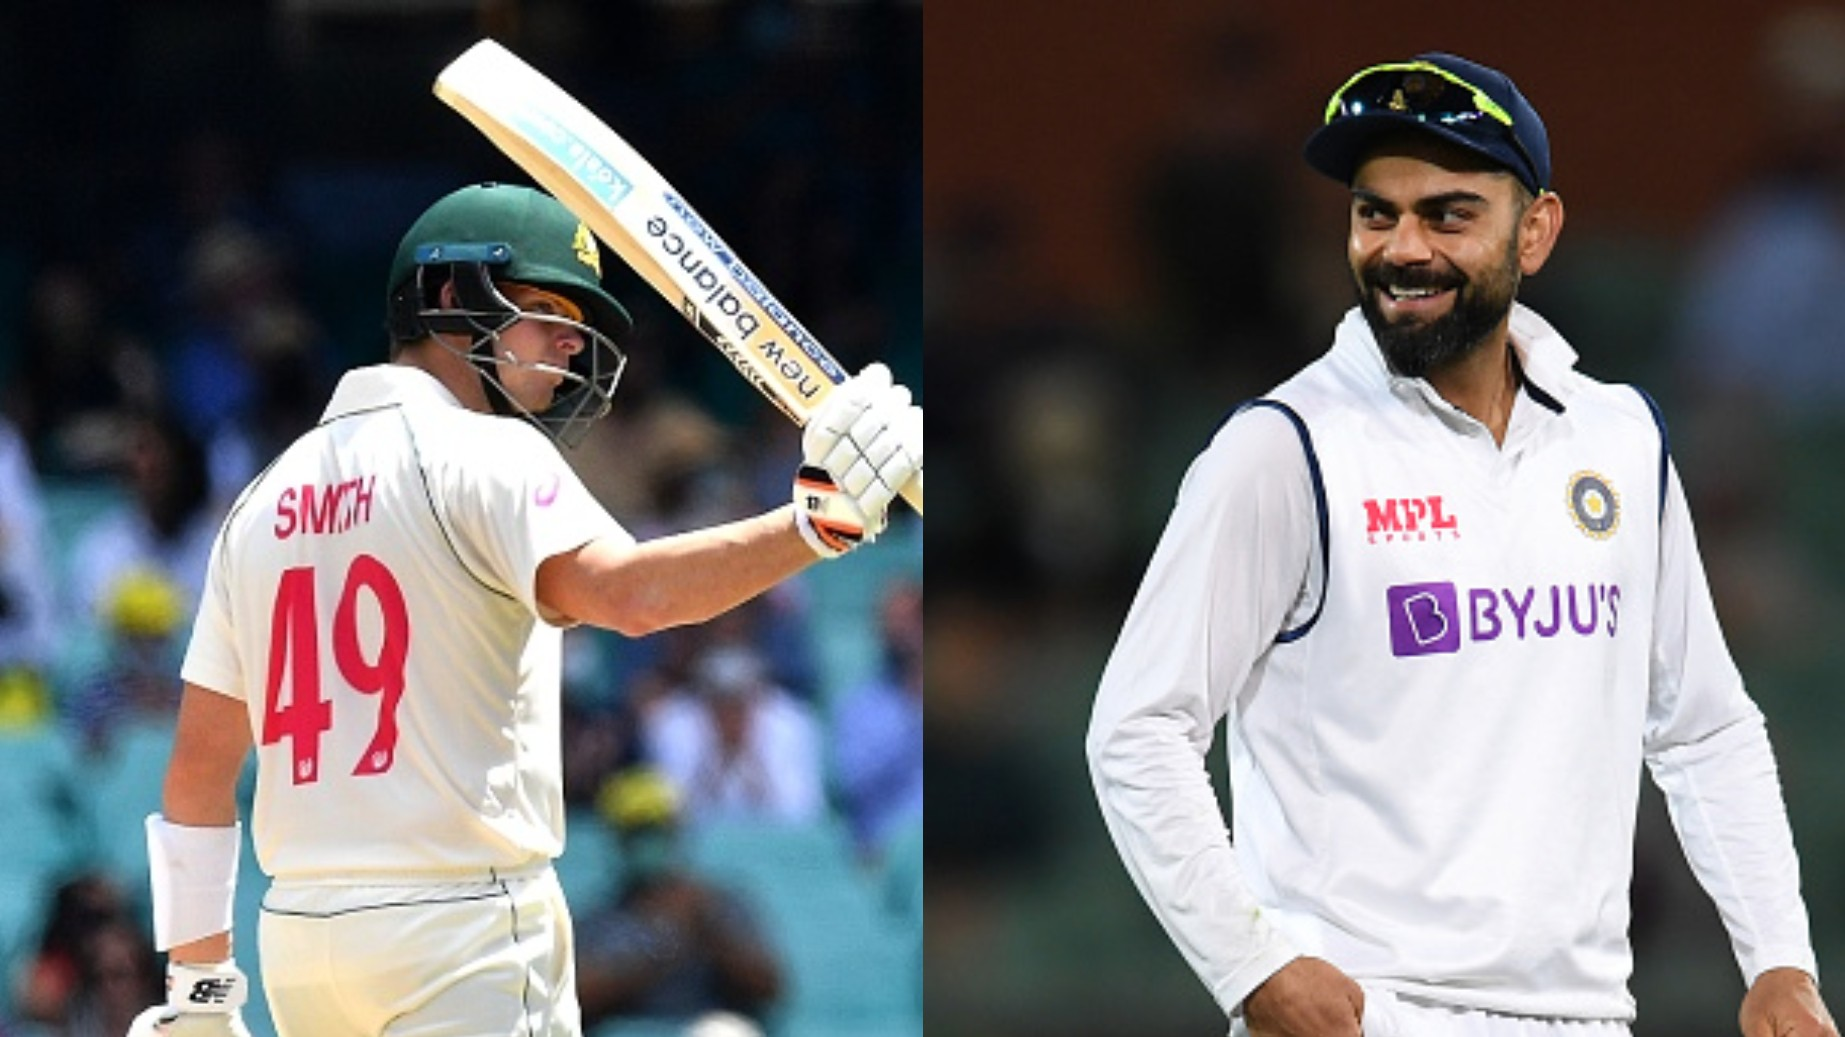 Virat Kohli slips to no.3 spot in ICC Test batting rankings behind Kane Williamson and Steve Smith